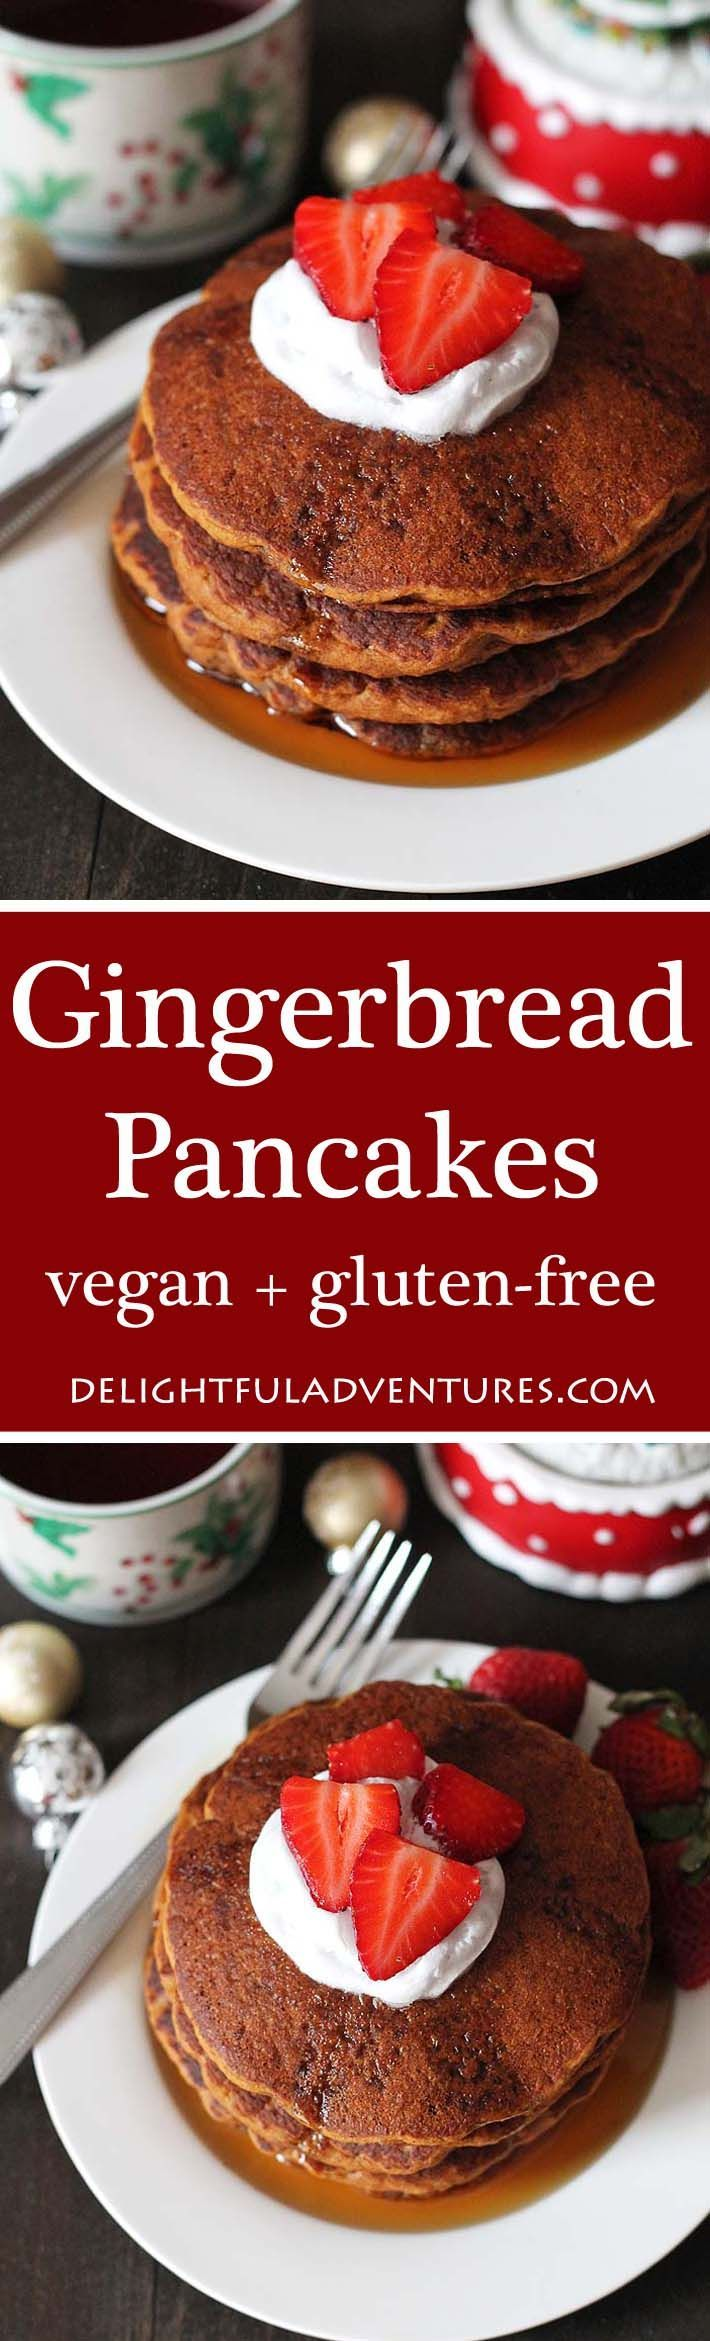 Easy Gluten Free Vegan Gingerbread Pancakes